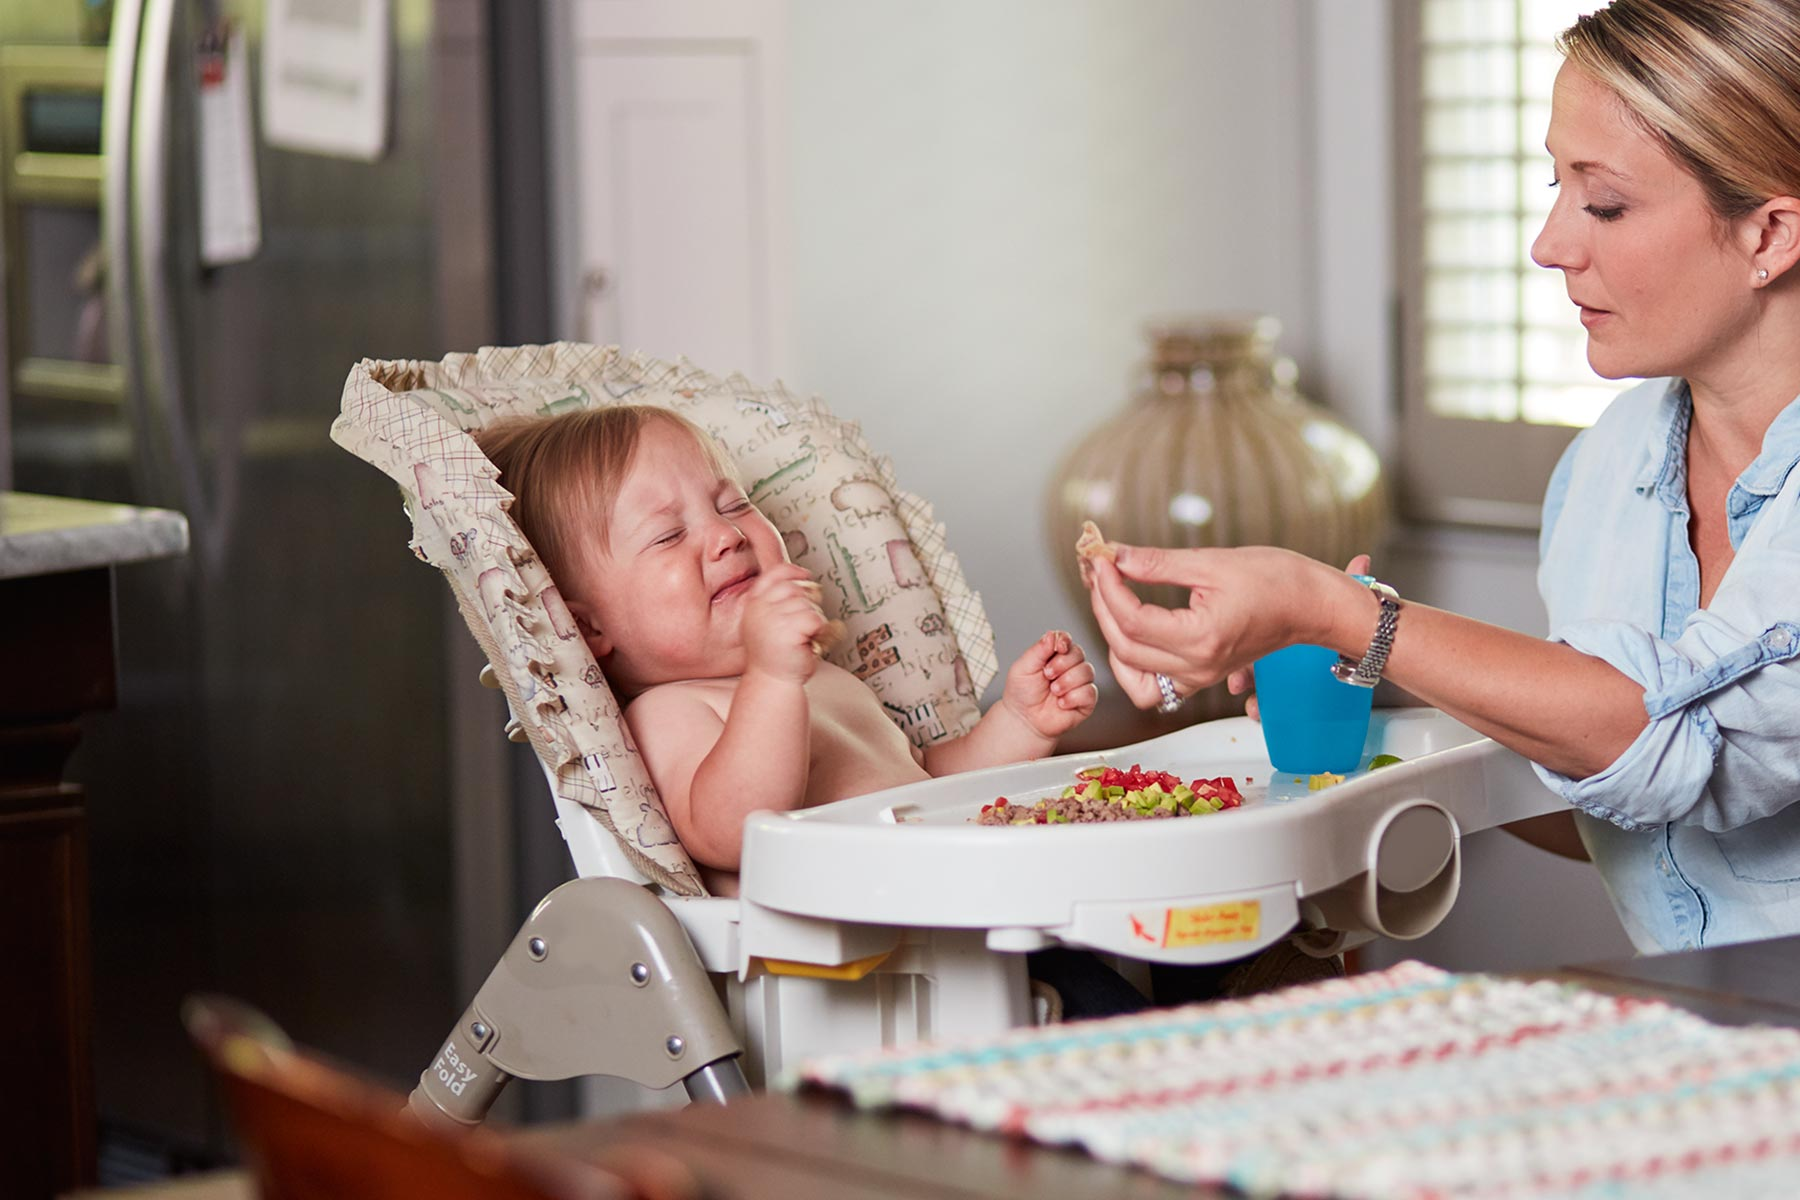 eating chair for toddlers woven lawn practical ways to avoid toddler mealtime mistakes